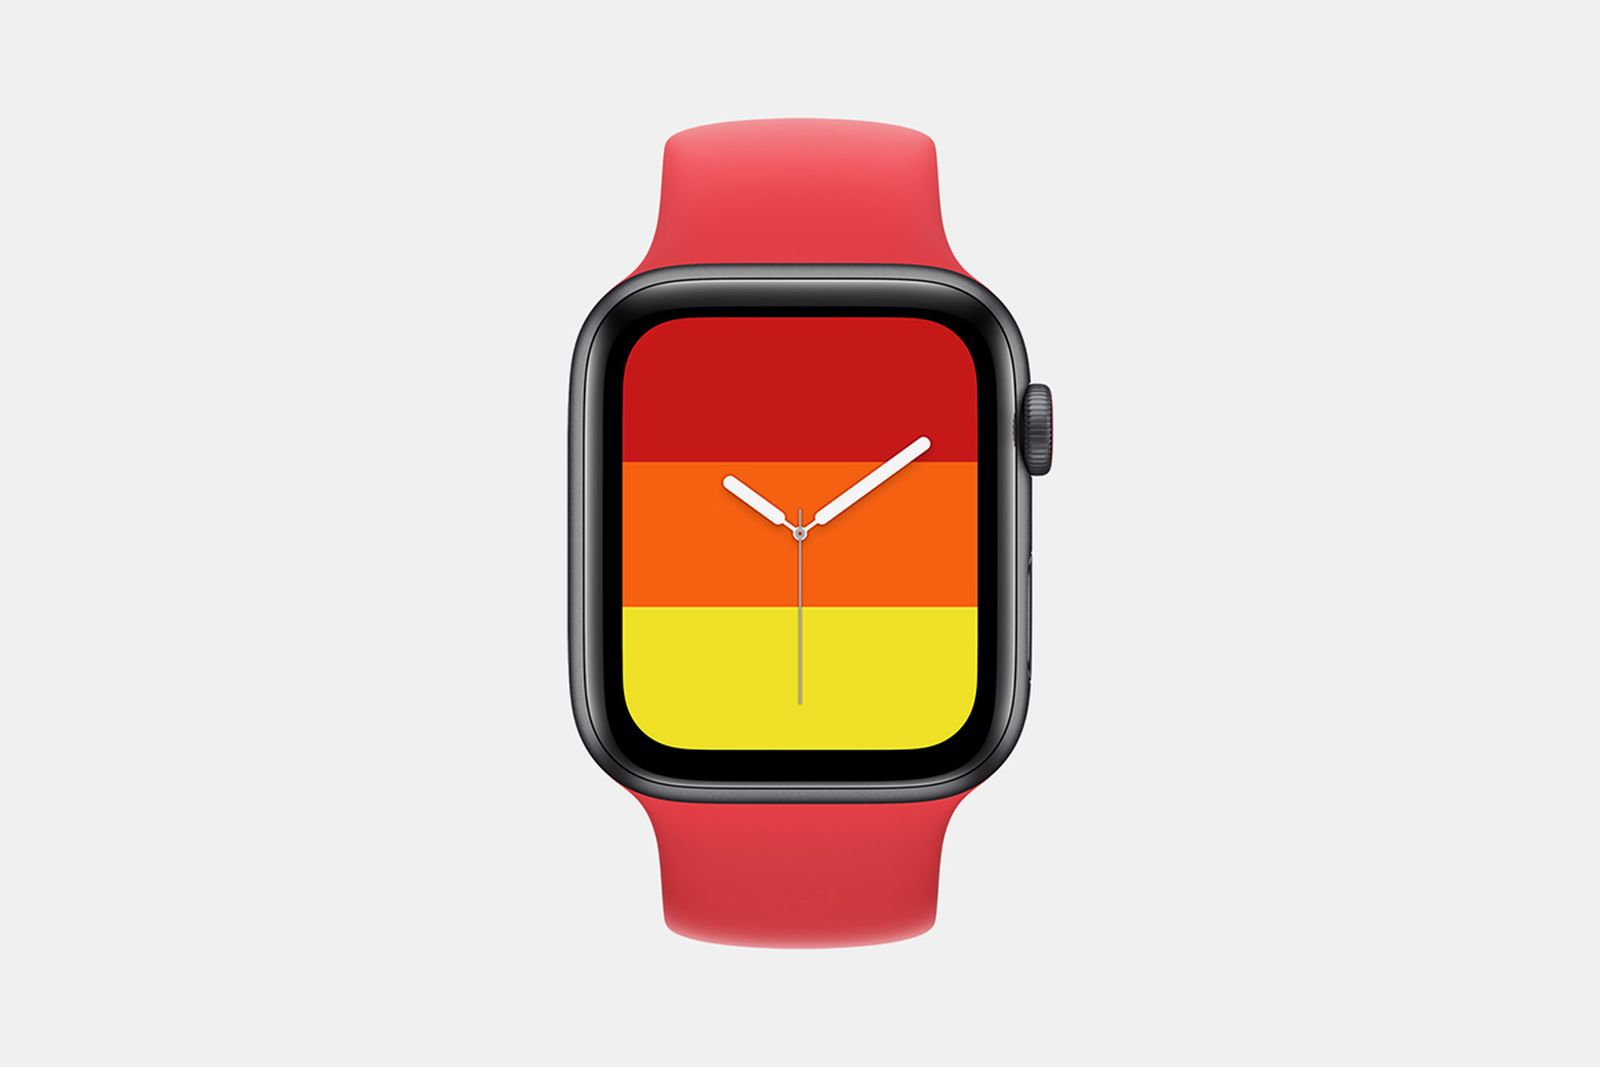 apple-watch-series-6-ipad-air-1-07